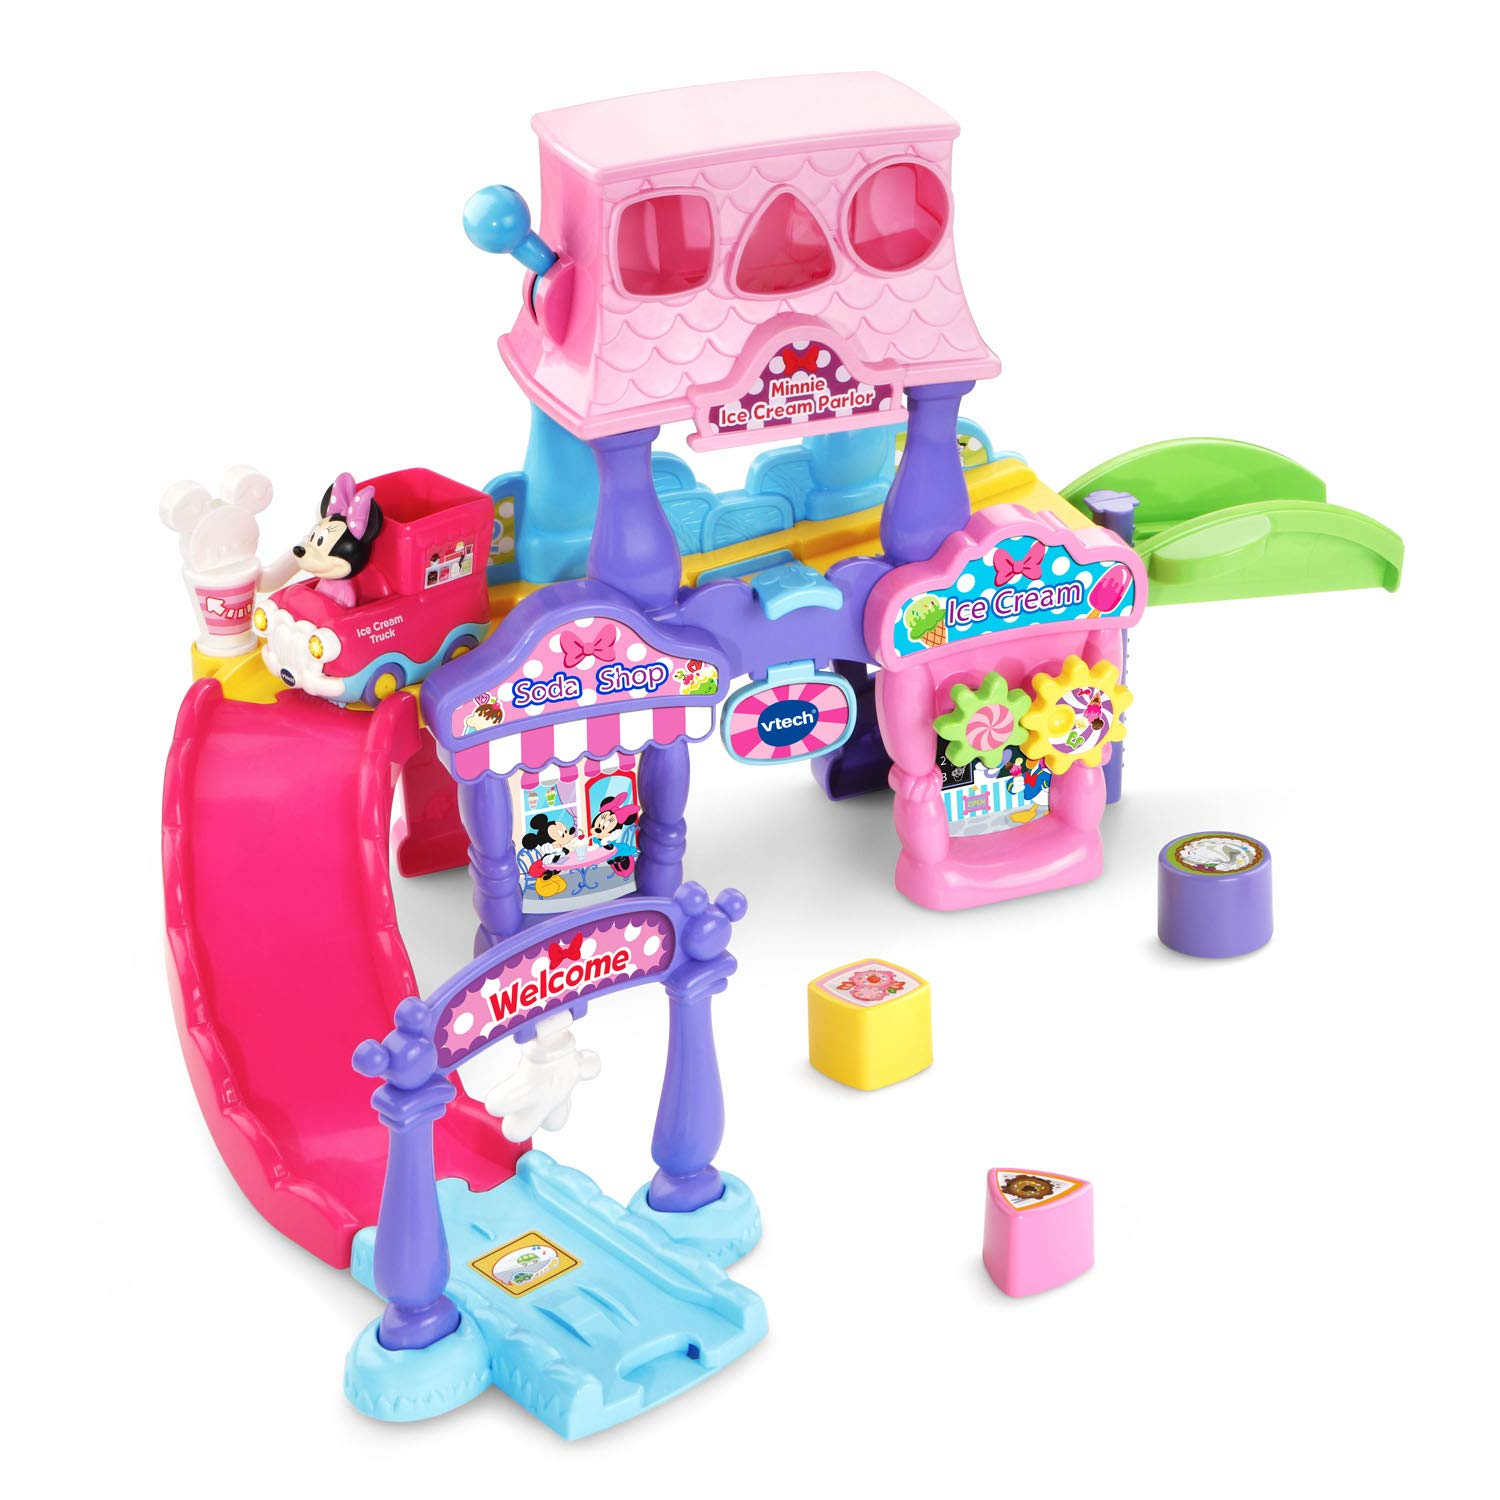 VTech Go! Go! Smart Wheels Minnie Mouse Ice Cream Parlor by VTech (Image #9)